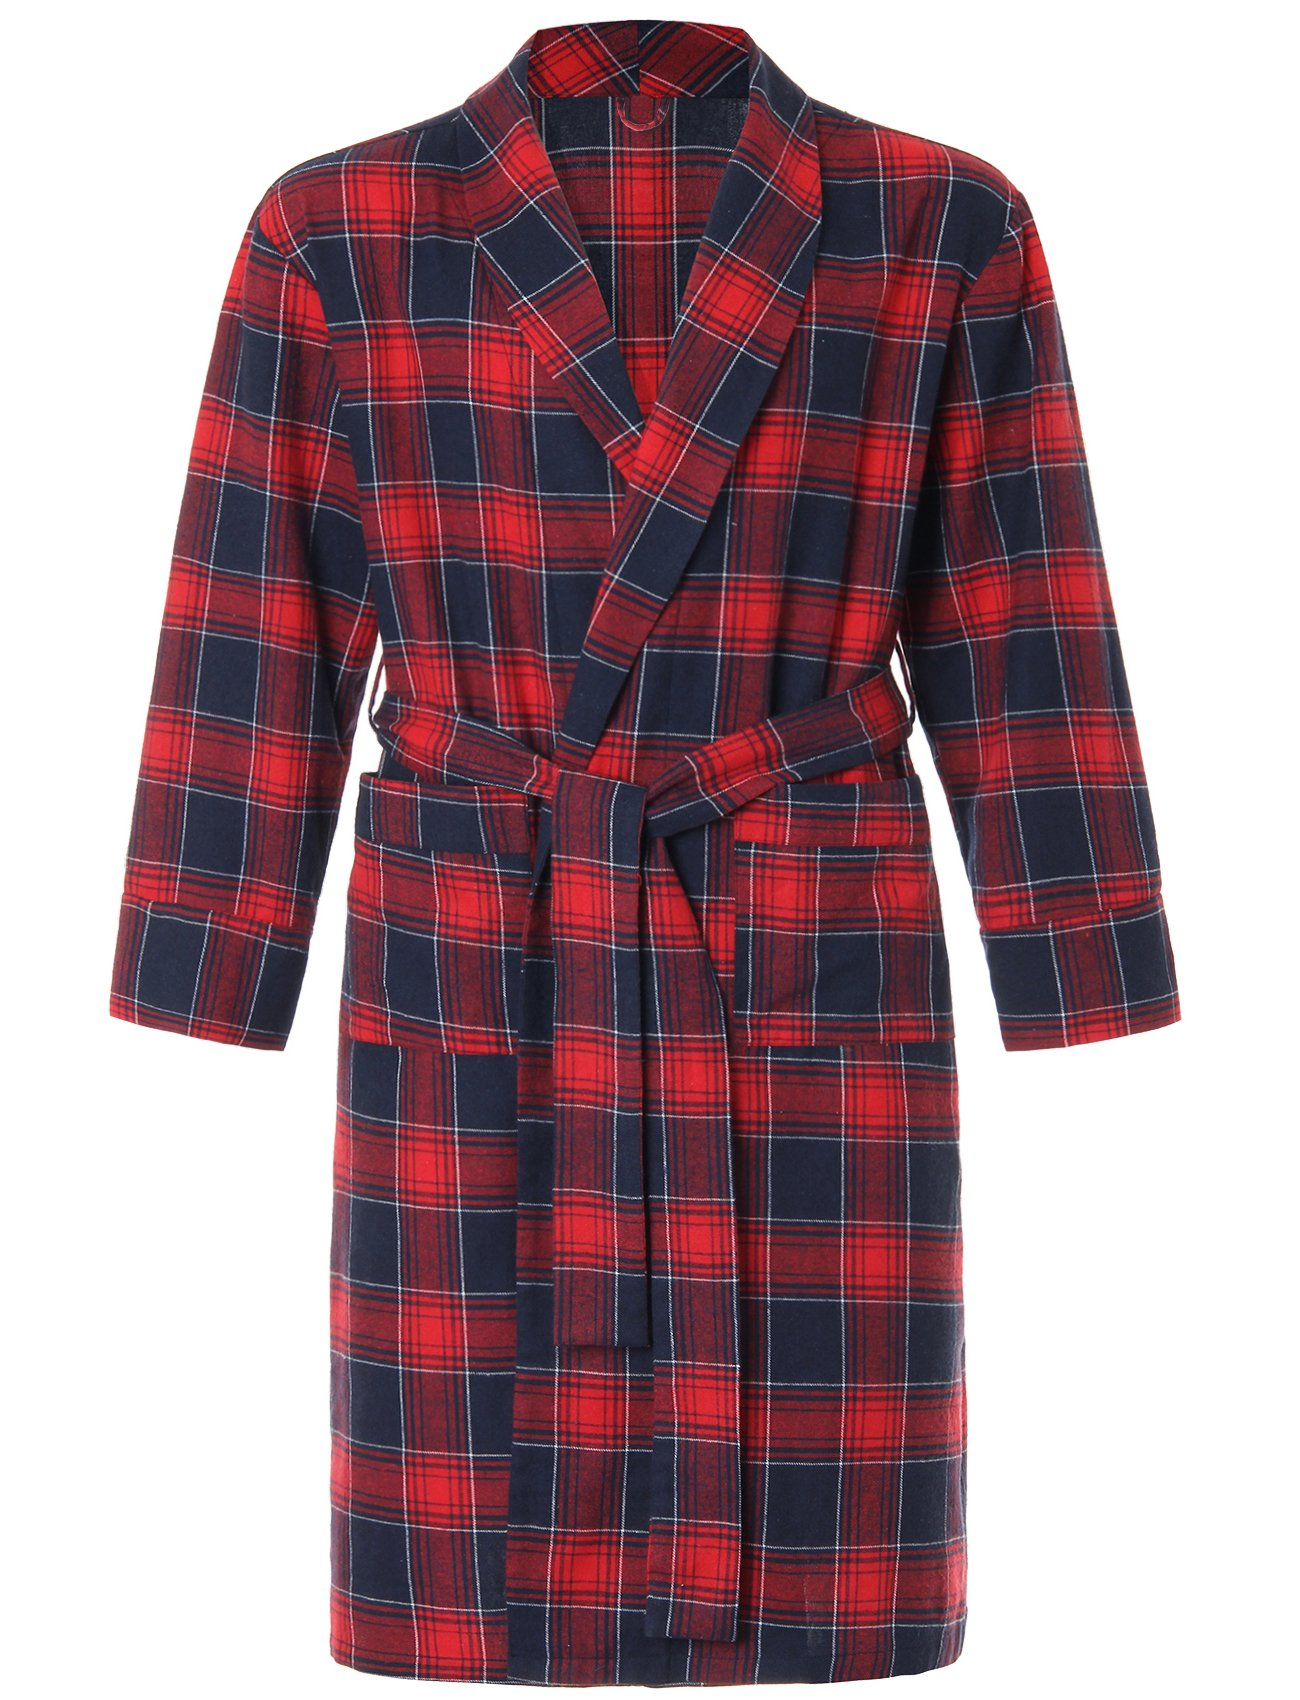 Latuza Men's Cotton Flannel Robe XL Red